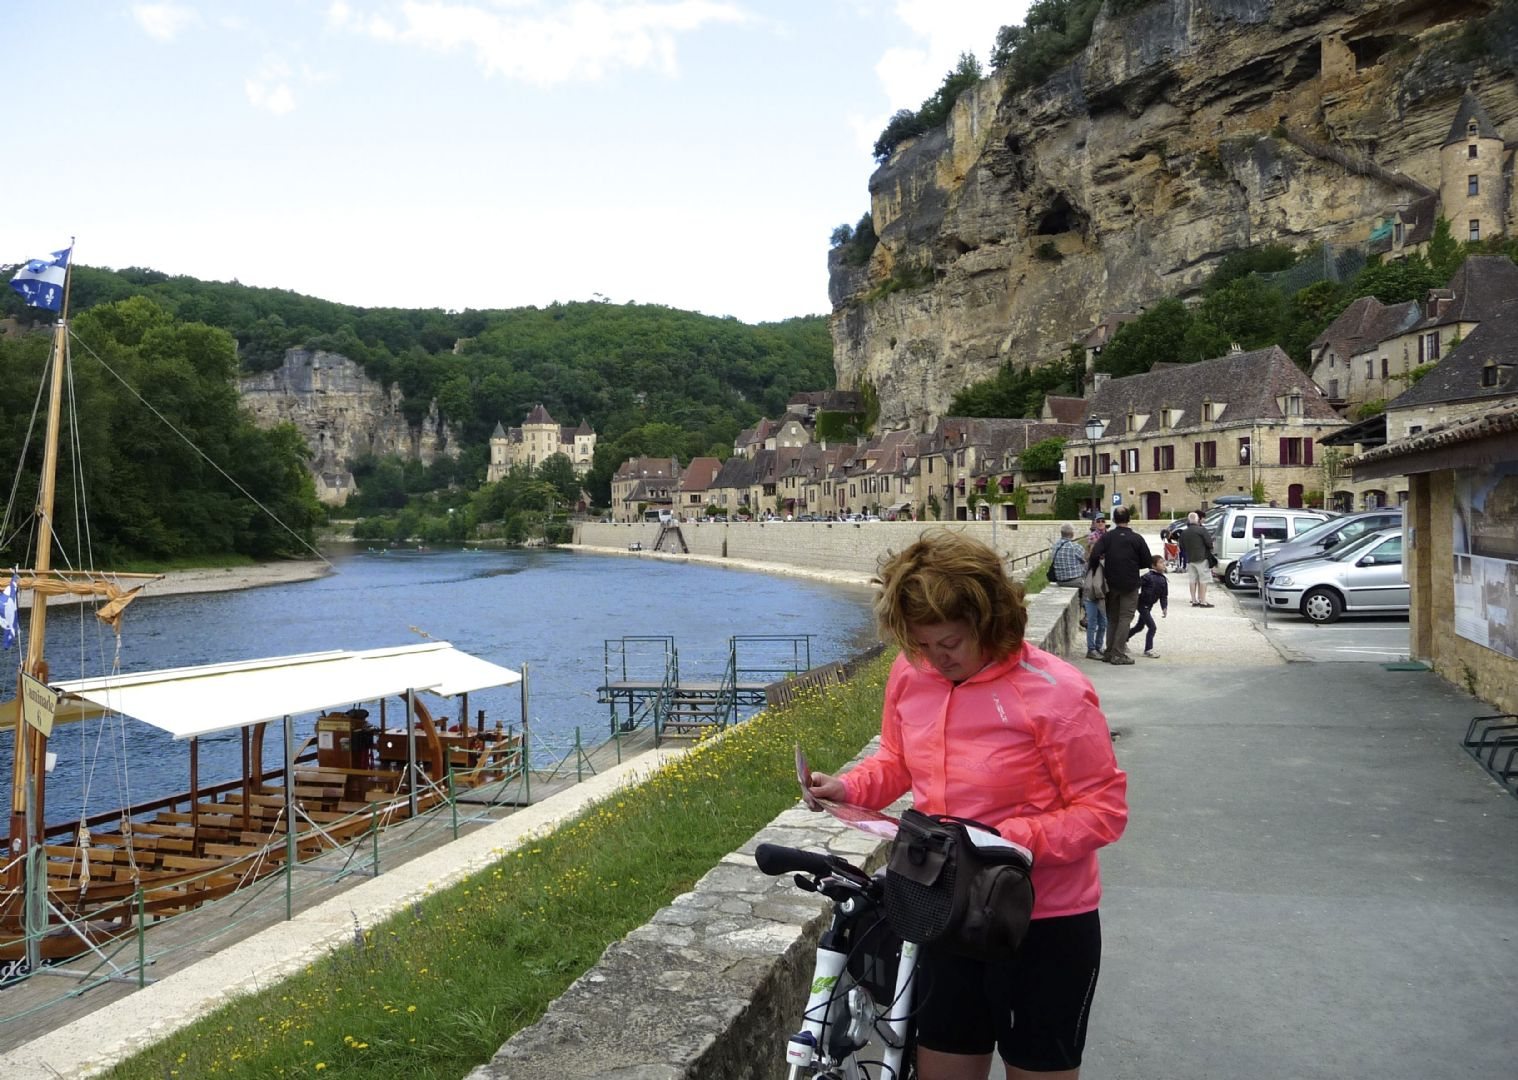 dordognecycling5.jpg - France - Dordogne Delights - Self-Guided Leisure Cycling Holiday - Leisure Cycling